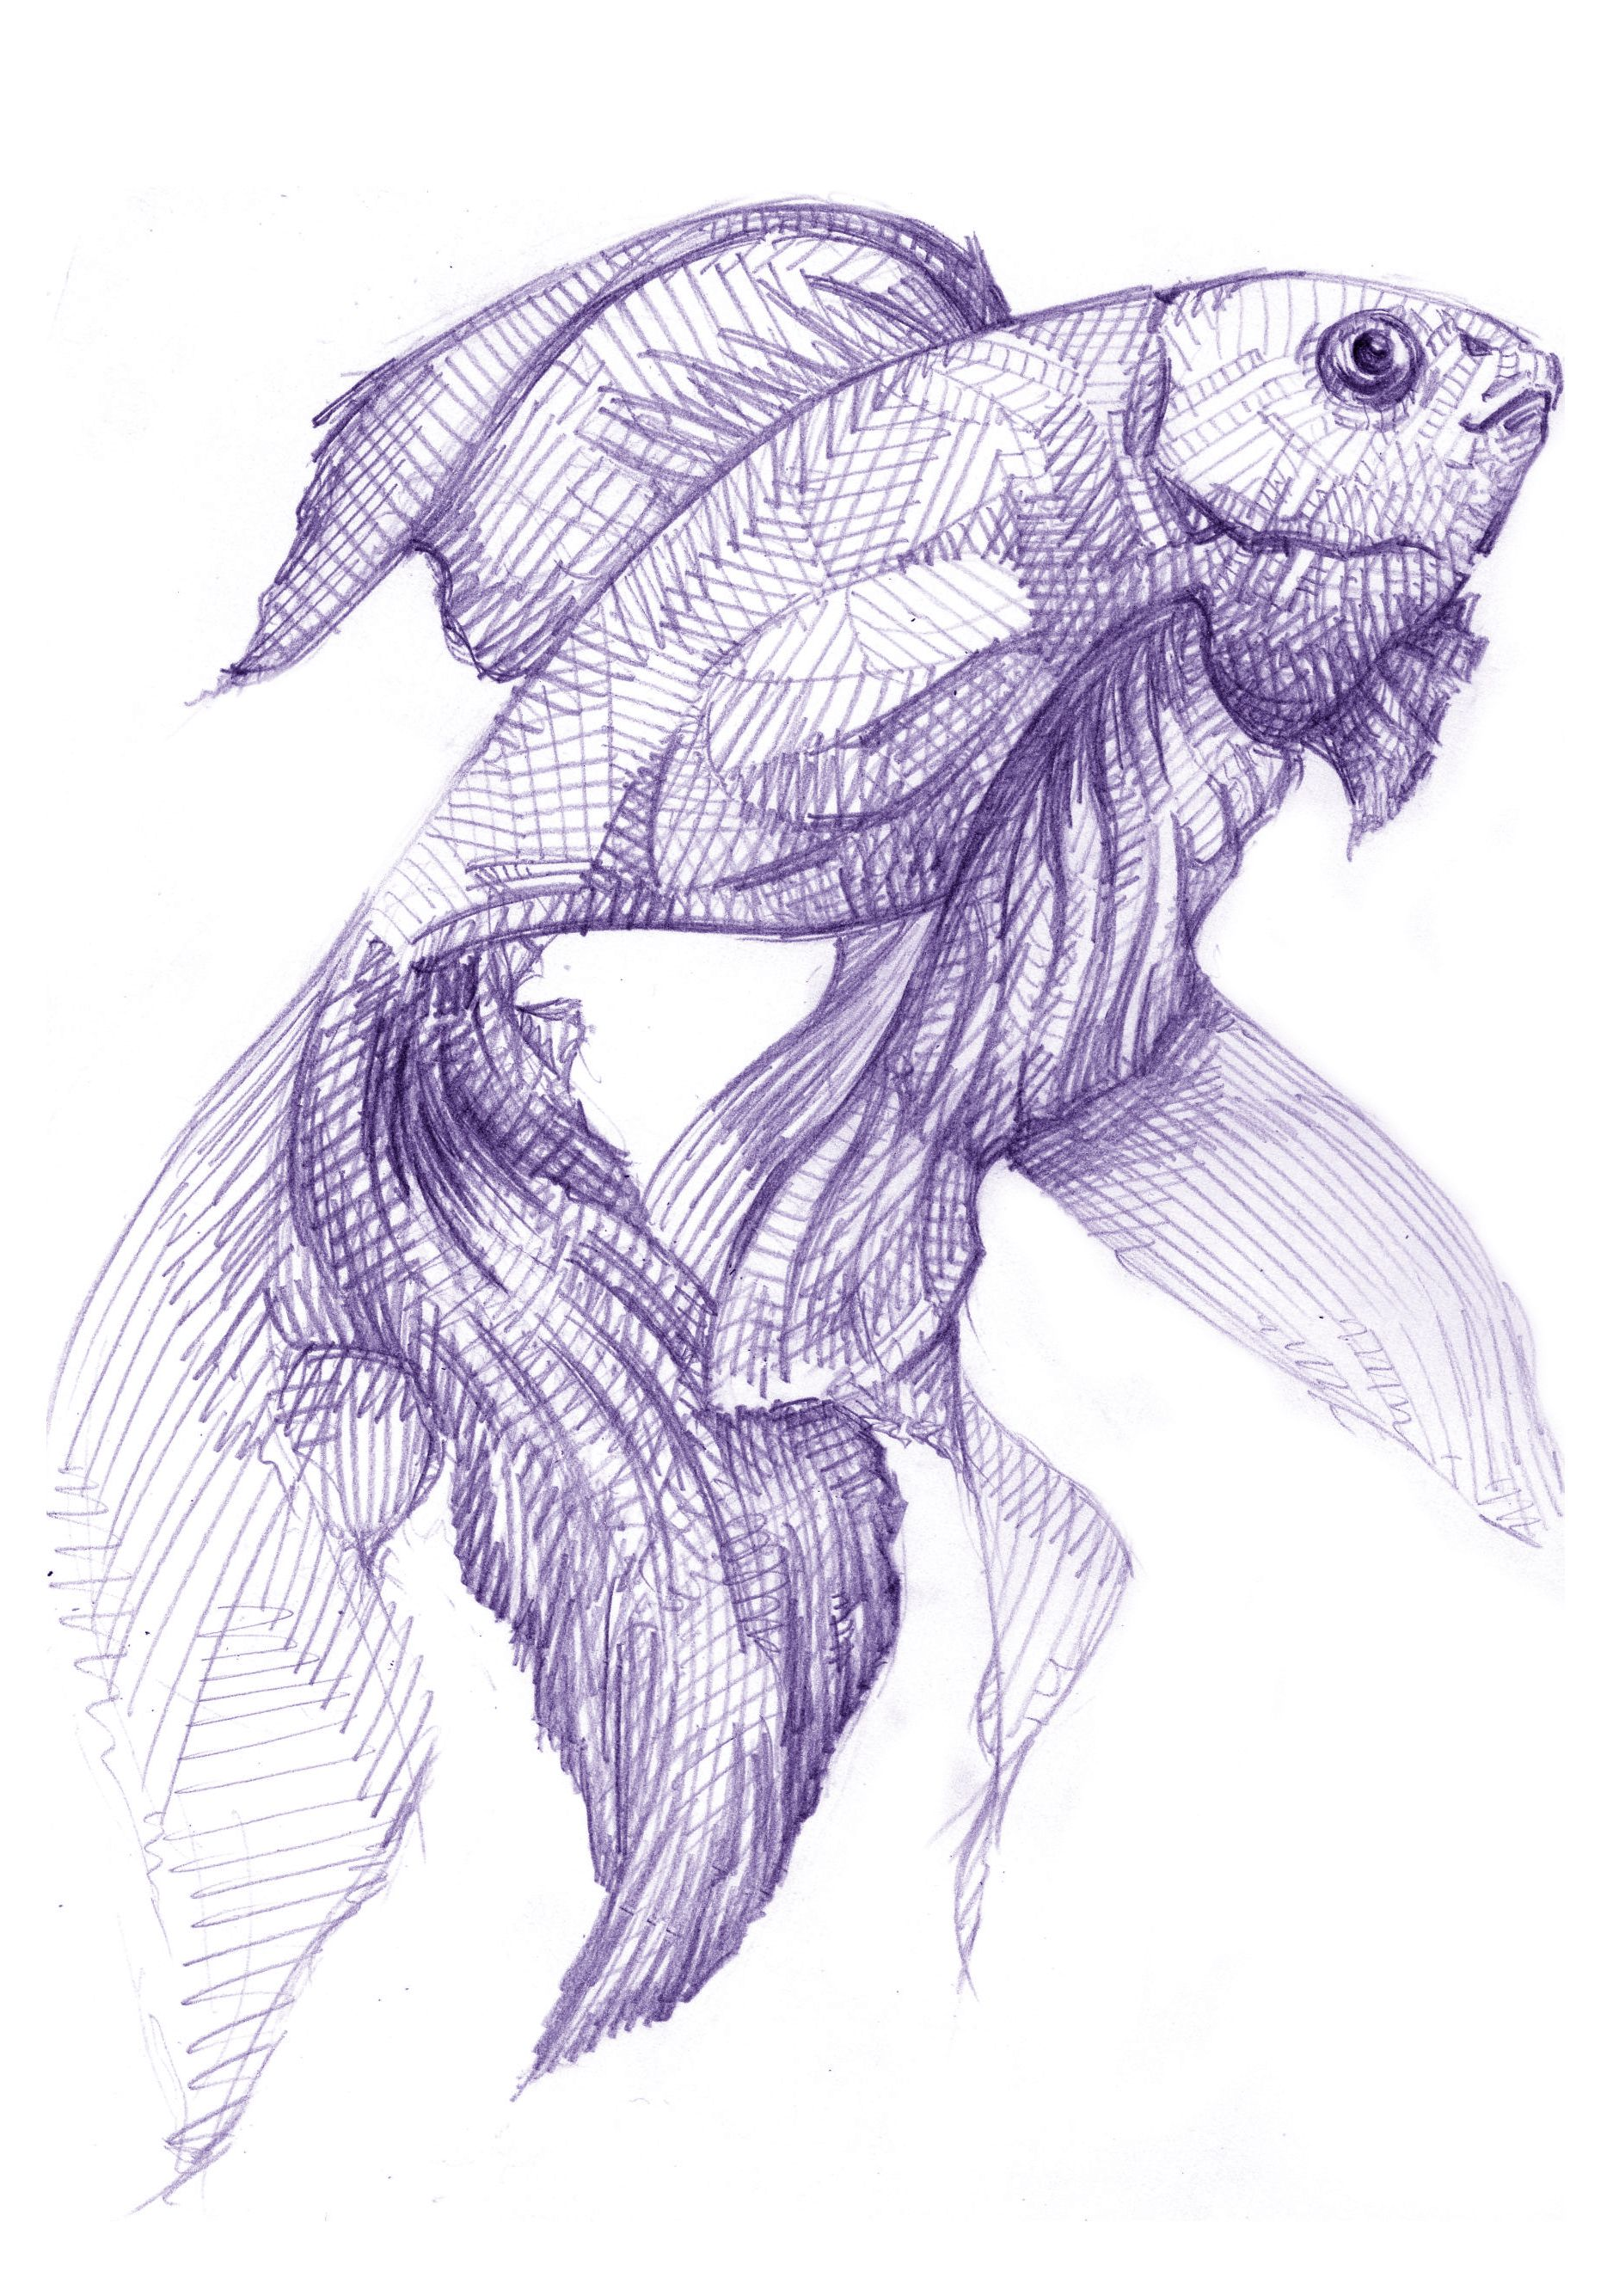 It's just an image of Rare Fish Drawing Images